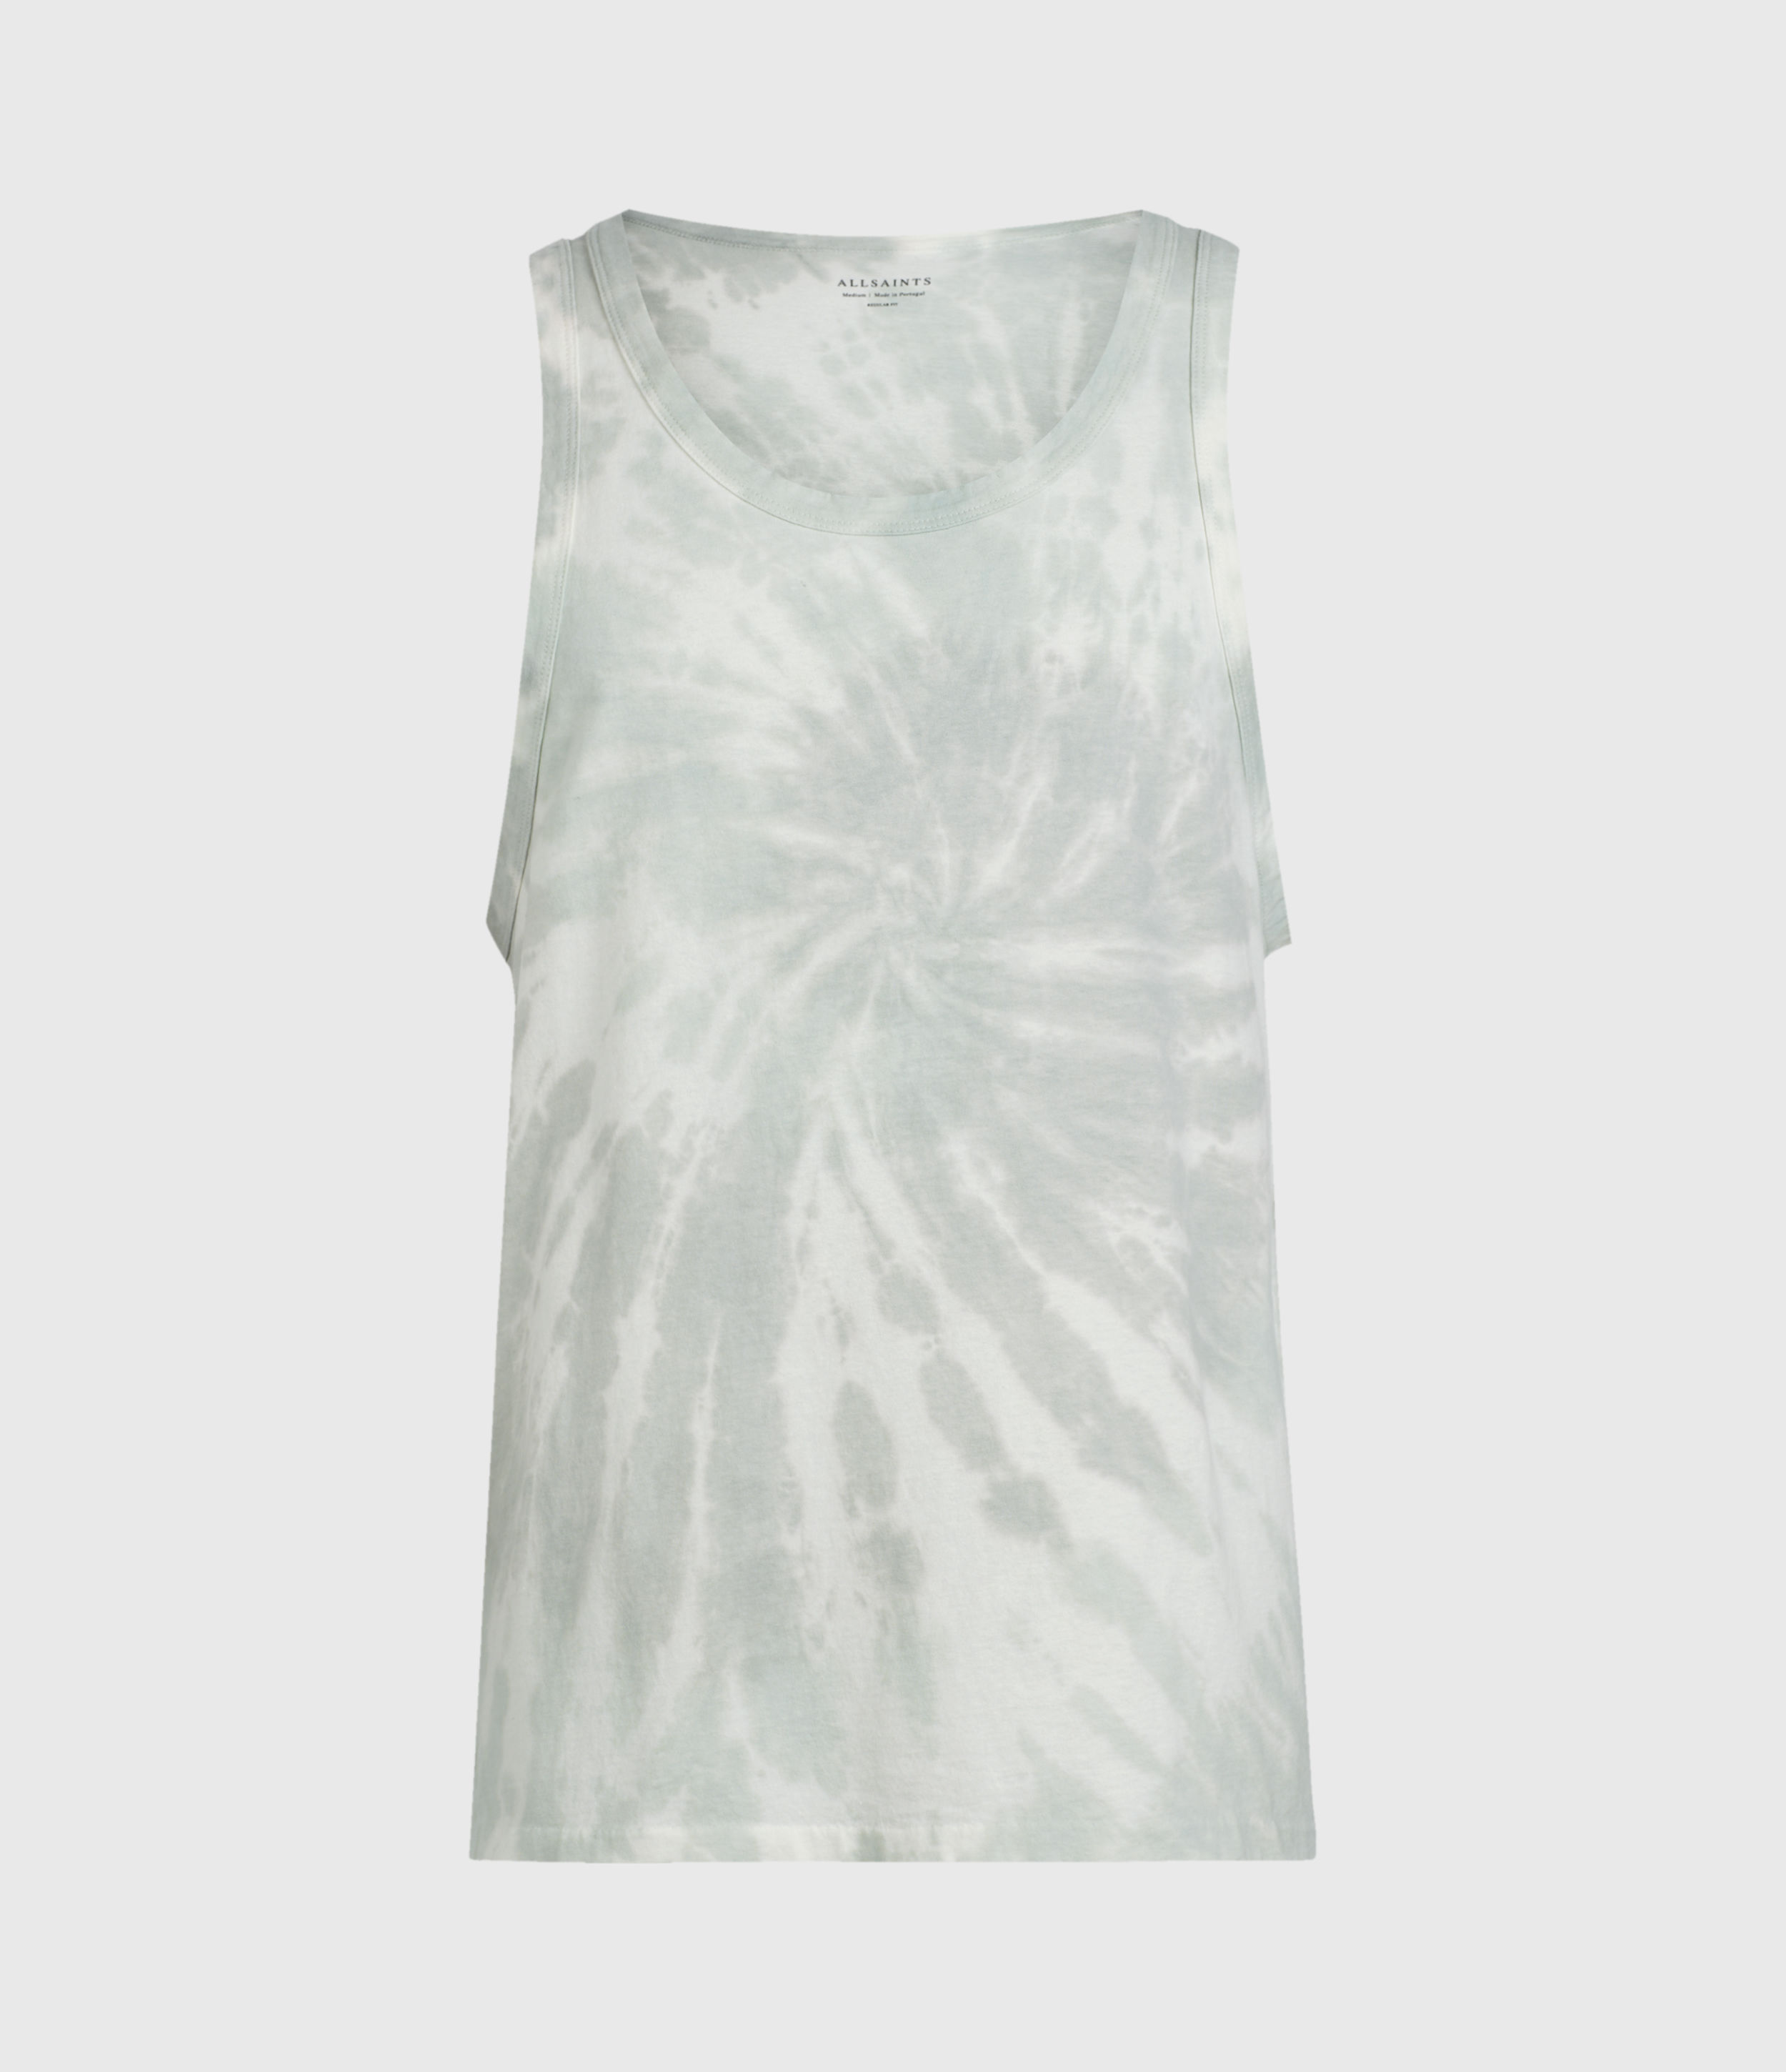 AllSaints Mens Tucker Tie Dye Vest, Light Grey, Size: S